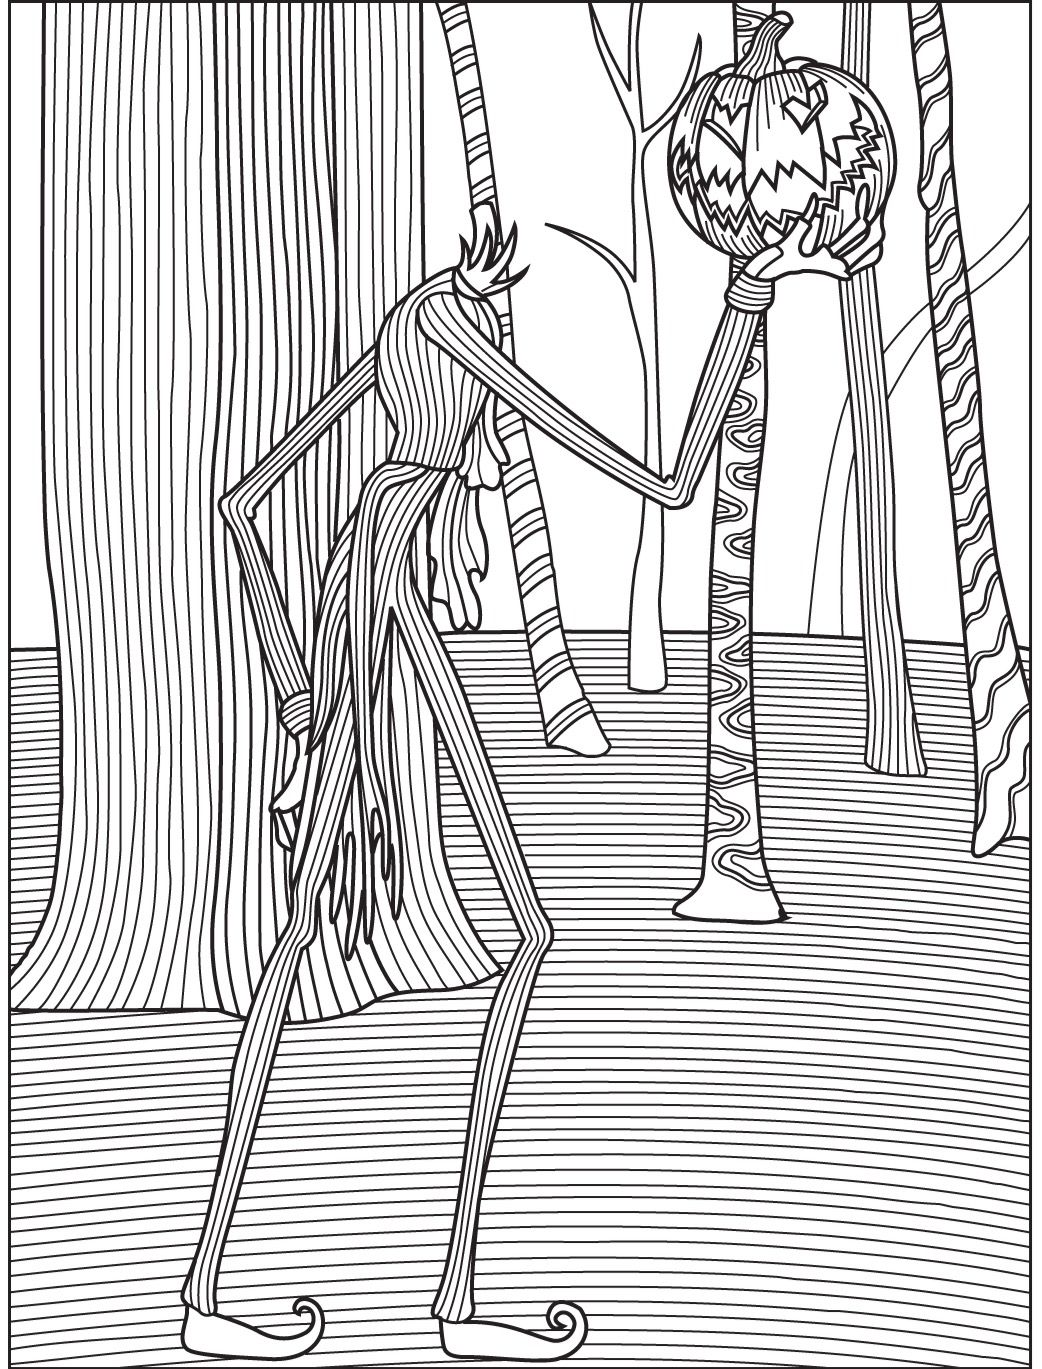 Halloween Coloring Page Colorish Free Coloring App For Adults By Goodsofttech Halloween Coloring Pages Disney Coloring Pages Coloring Books